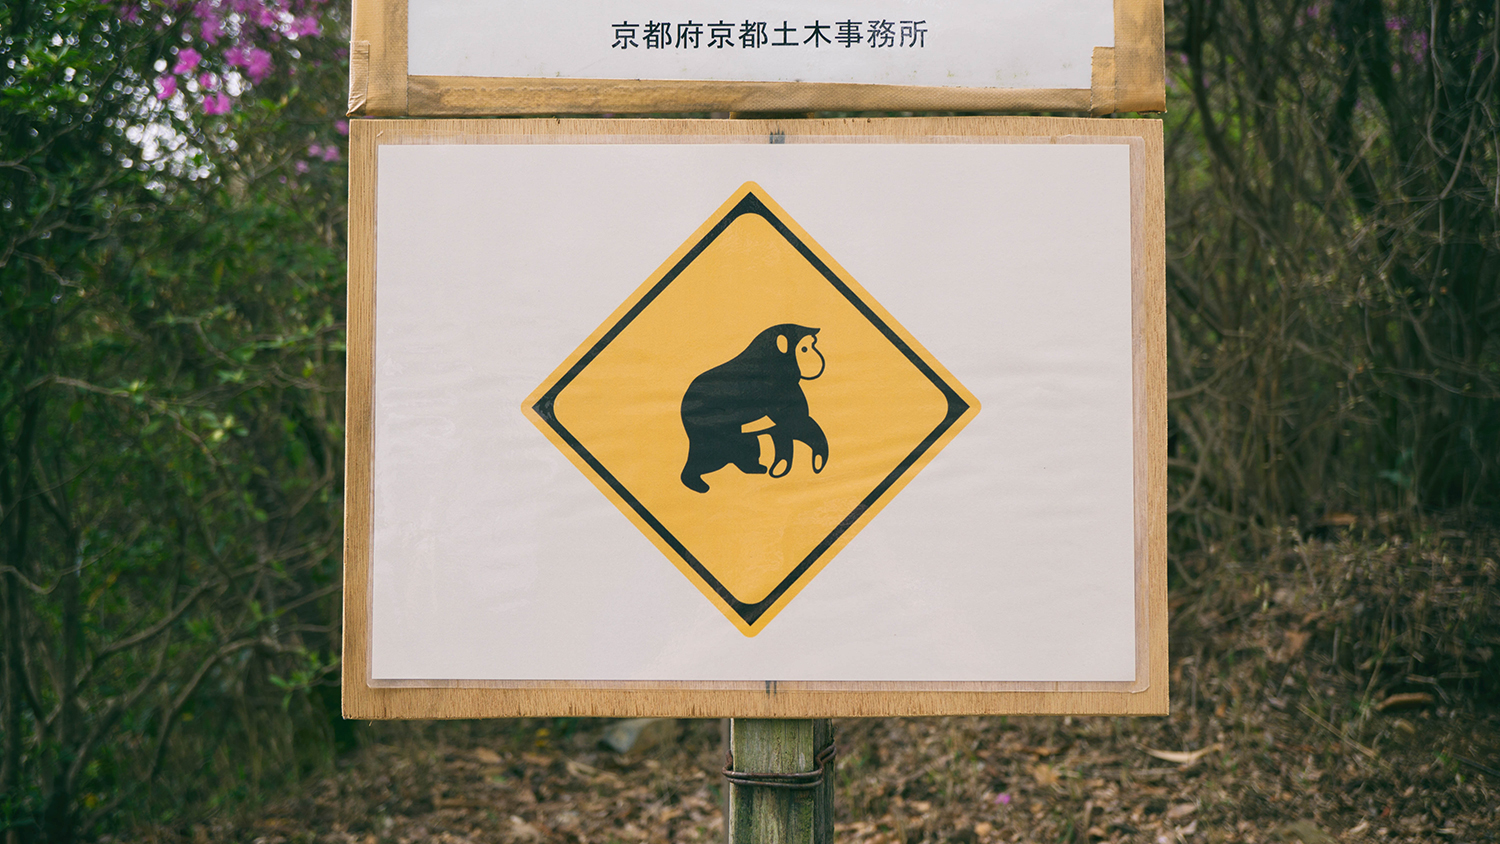 A sign warning of Monkeys?? A thing to come?!